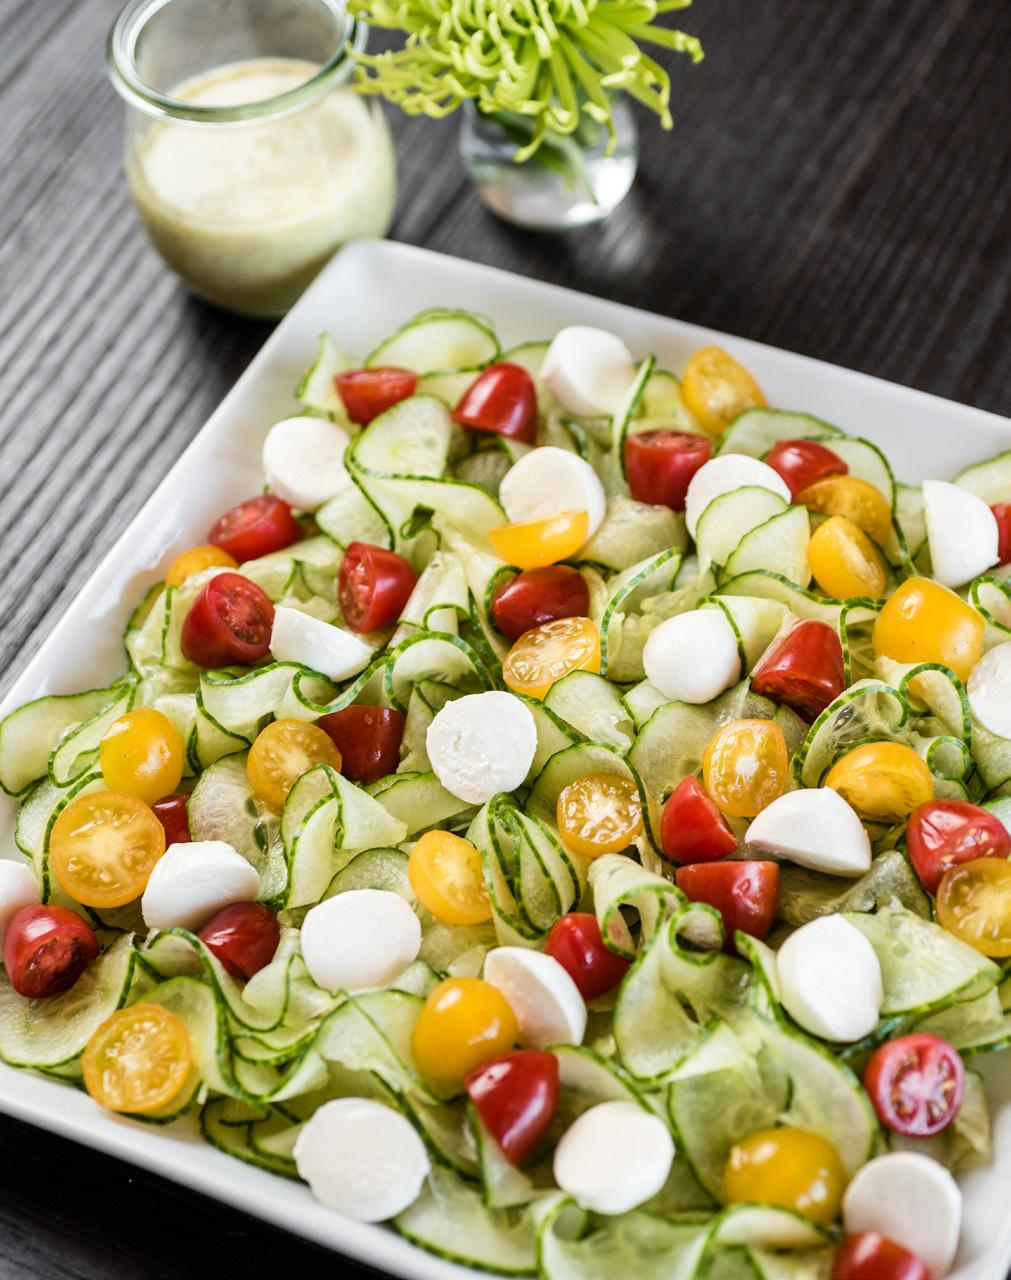 Cucumber Caprese Salad Serves: 8 2 medium seedless cucumbers 1 cup red cherry tomato halves 1 cup yellow cherry tomato halves 1 cup fresh mozzarella balls, halved Salt and coarse black pepper 1/3 cup